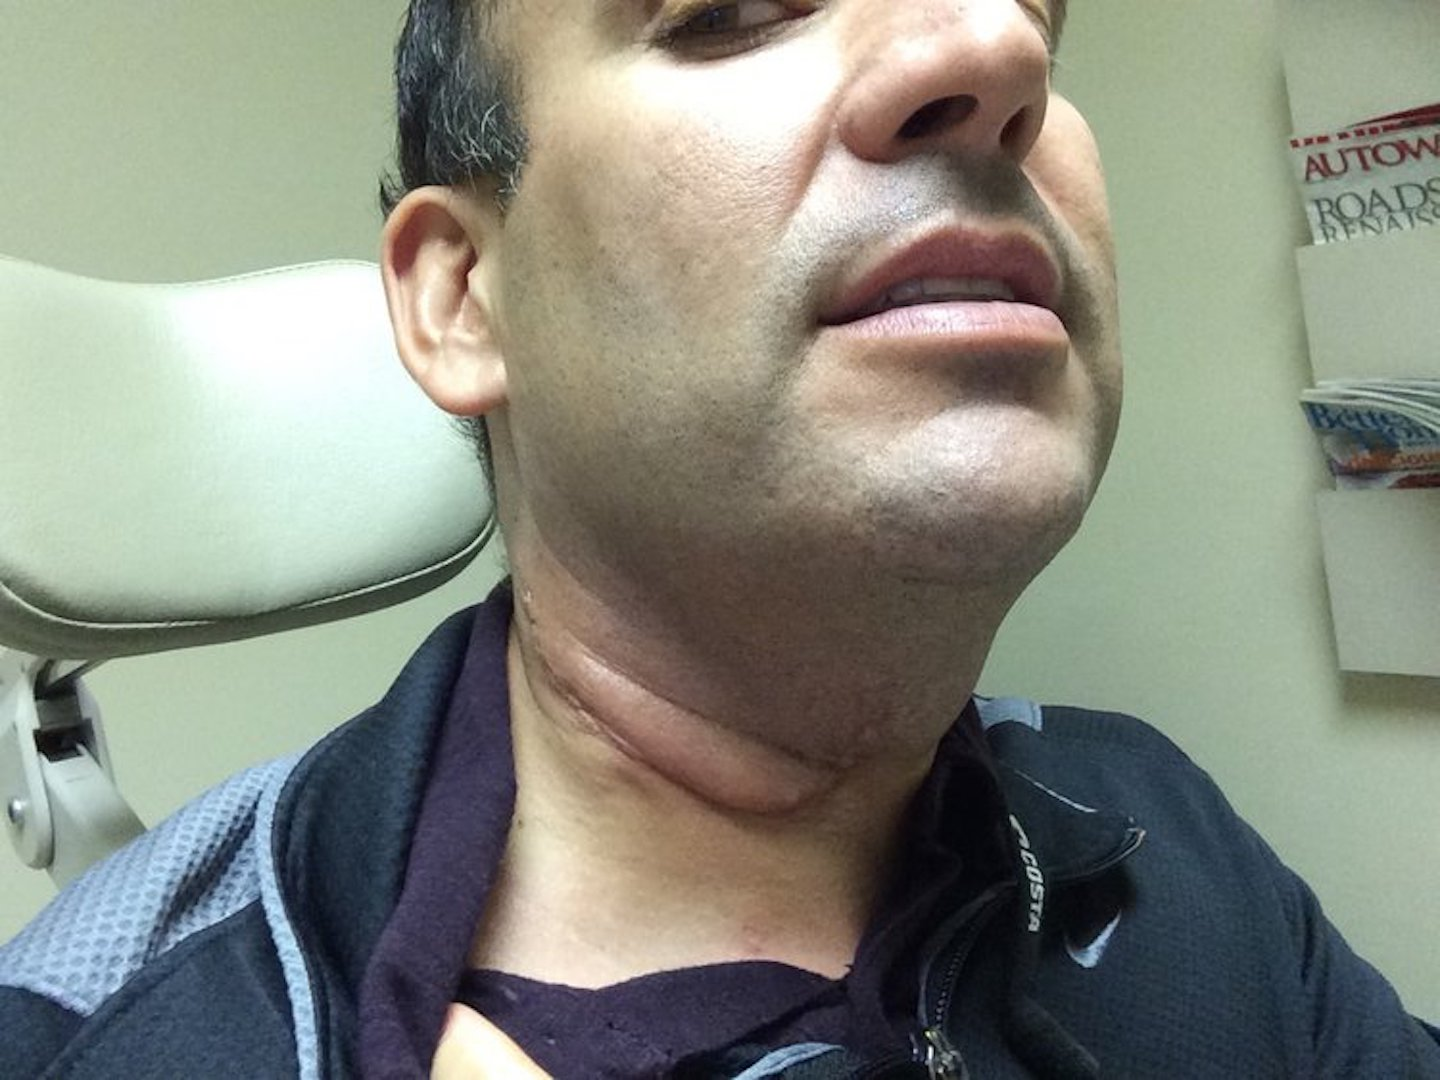 symptoms of hpv head and neck cancer